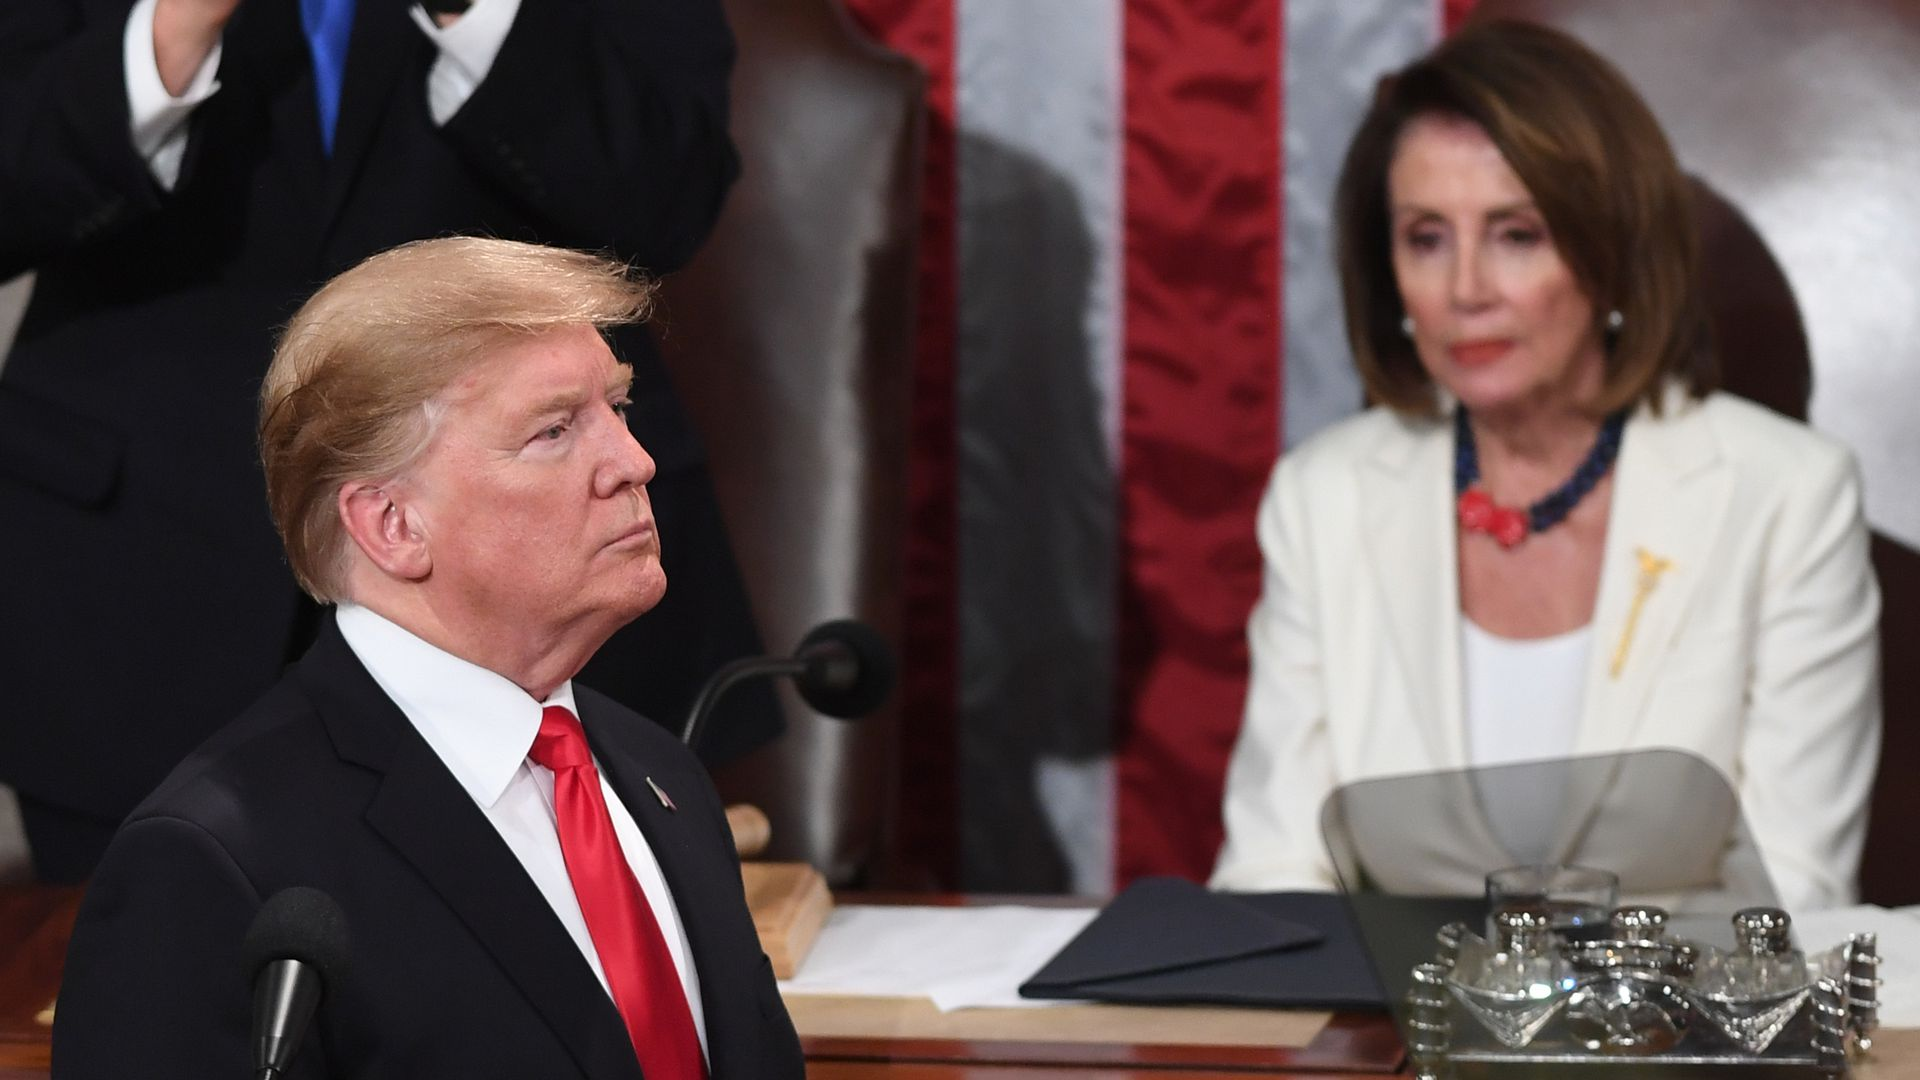 President Trump, flanked by Speaker of the US House of Representatives Nancy Pelosi, delivers the State of the Union address at the US Capitol in Washington, DC, on February 5, 2019.